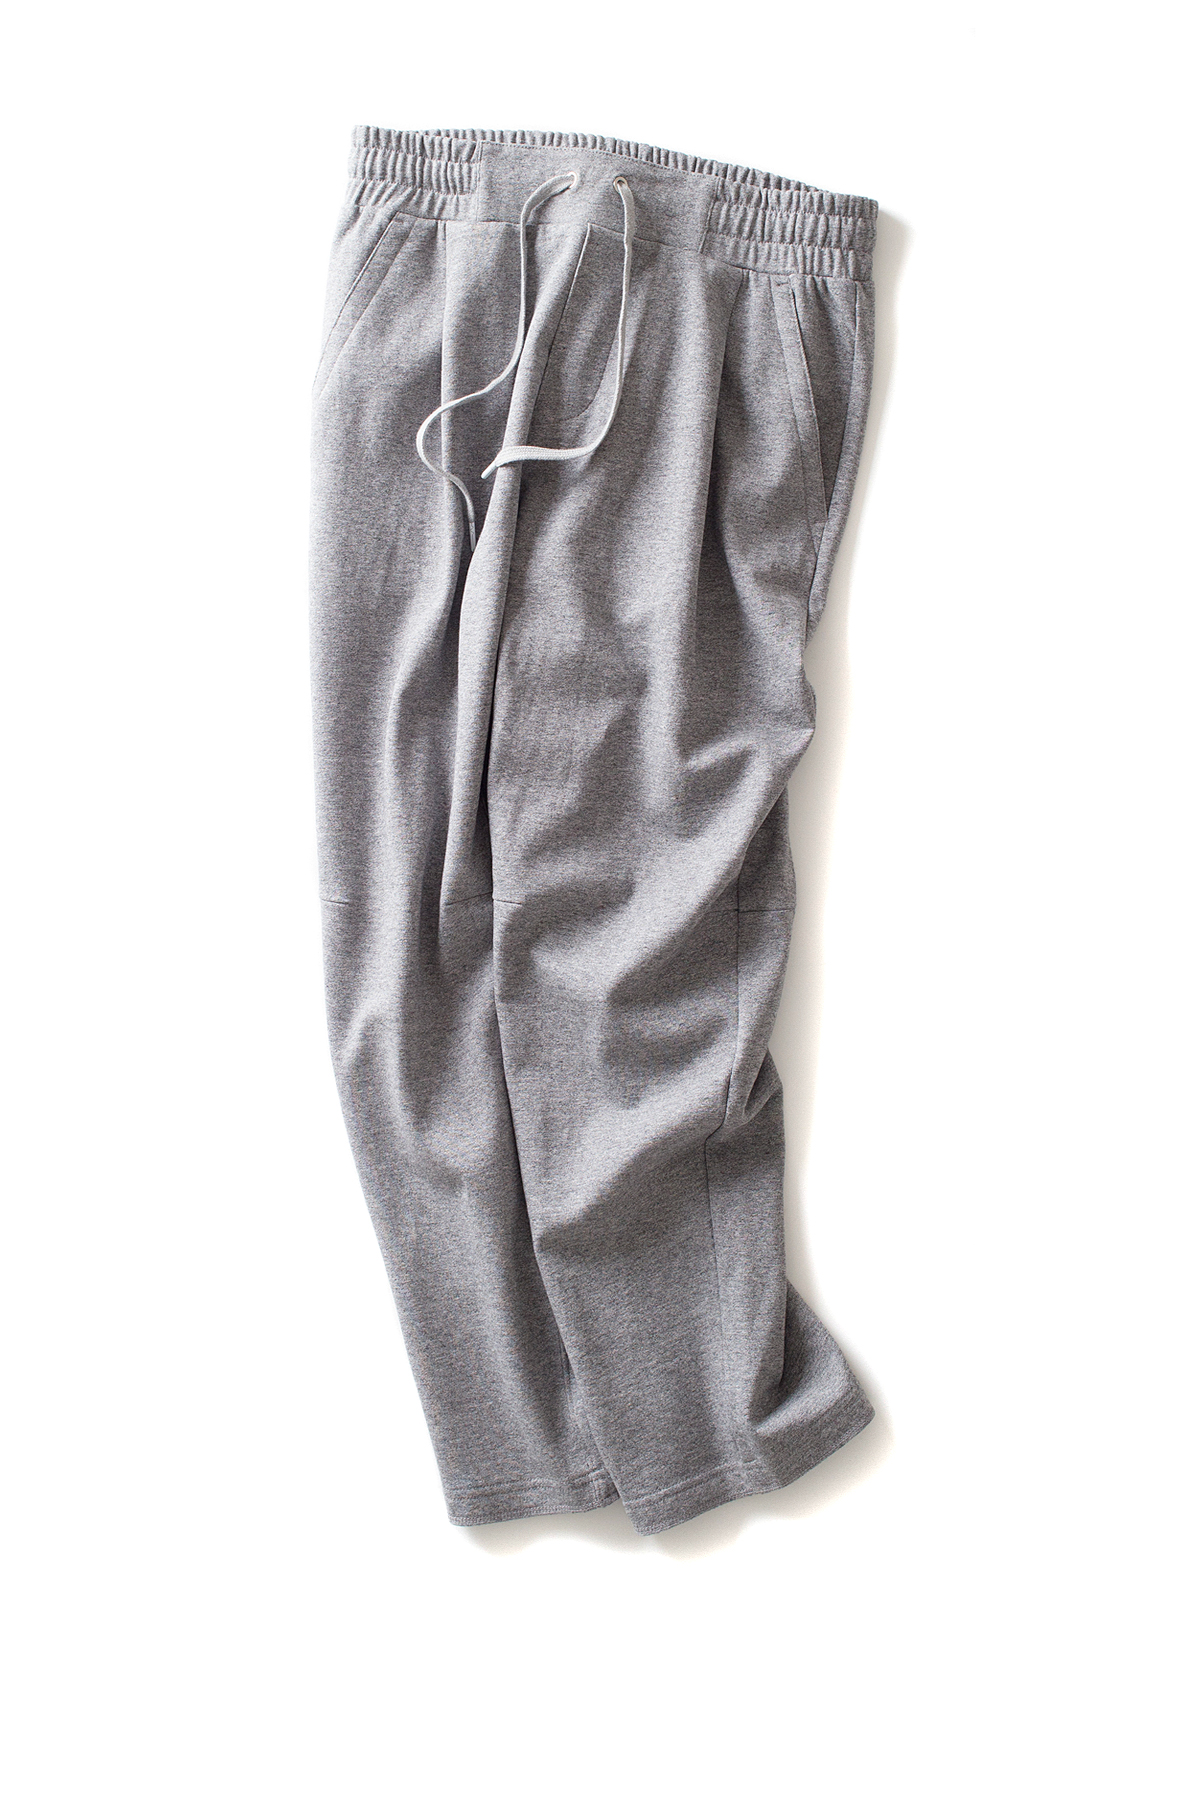 AECA WHITE : Crop Pants (Grey)